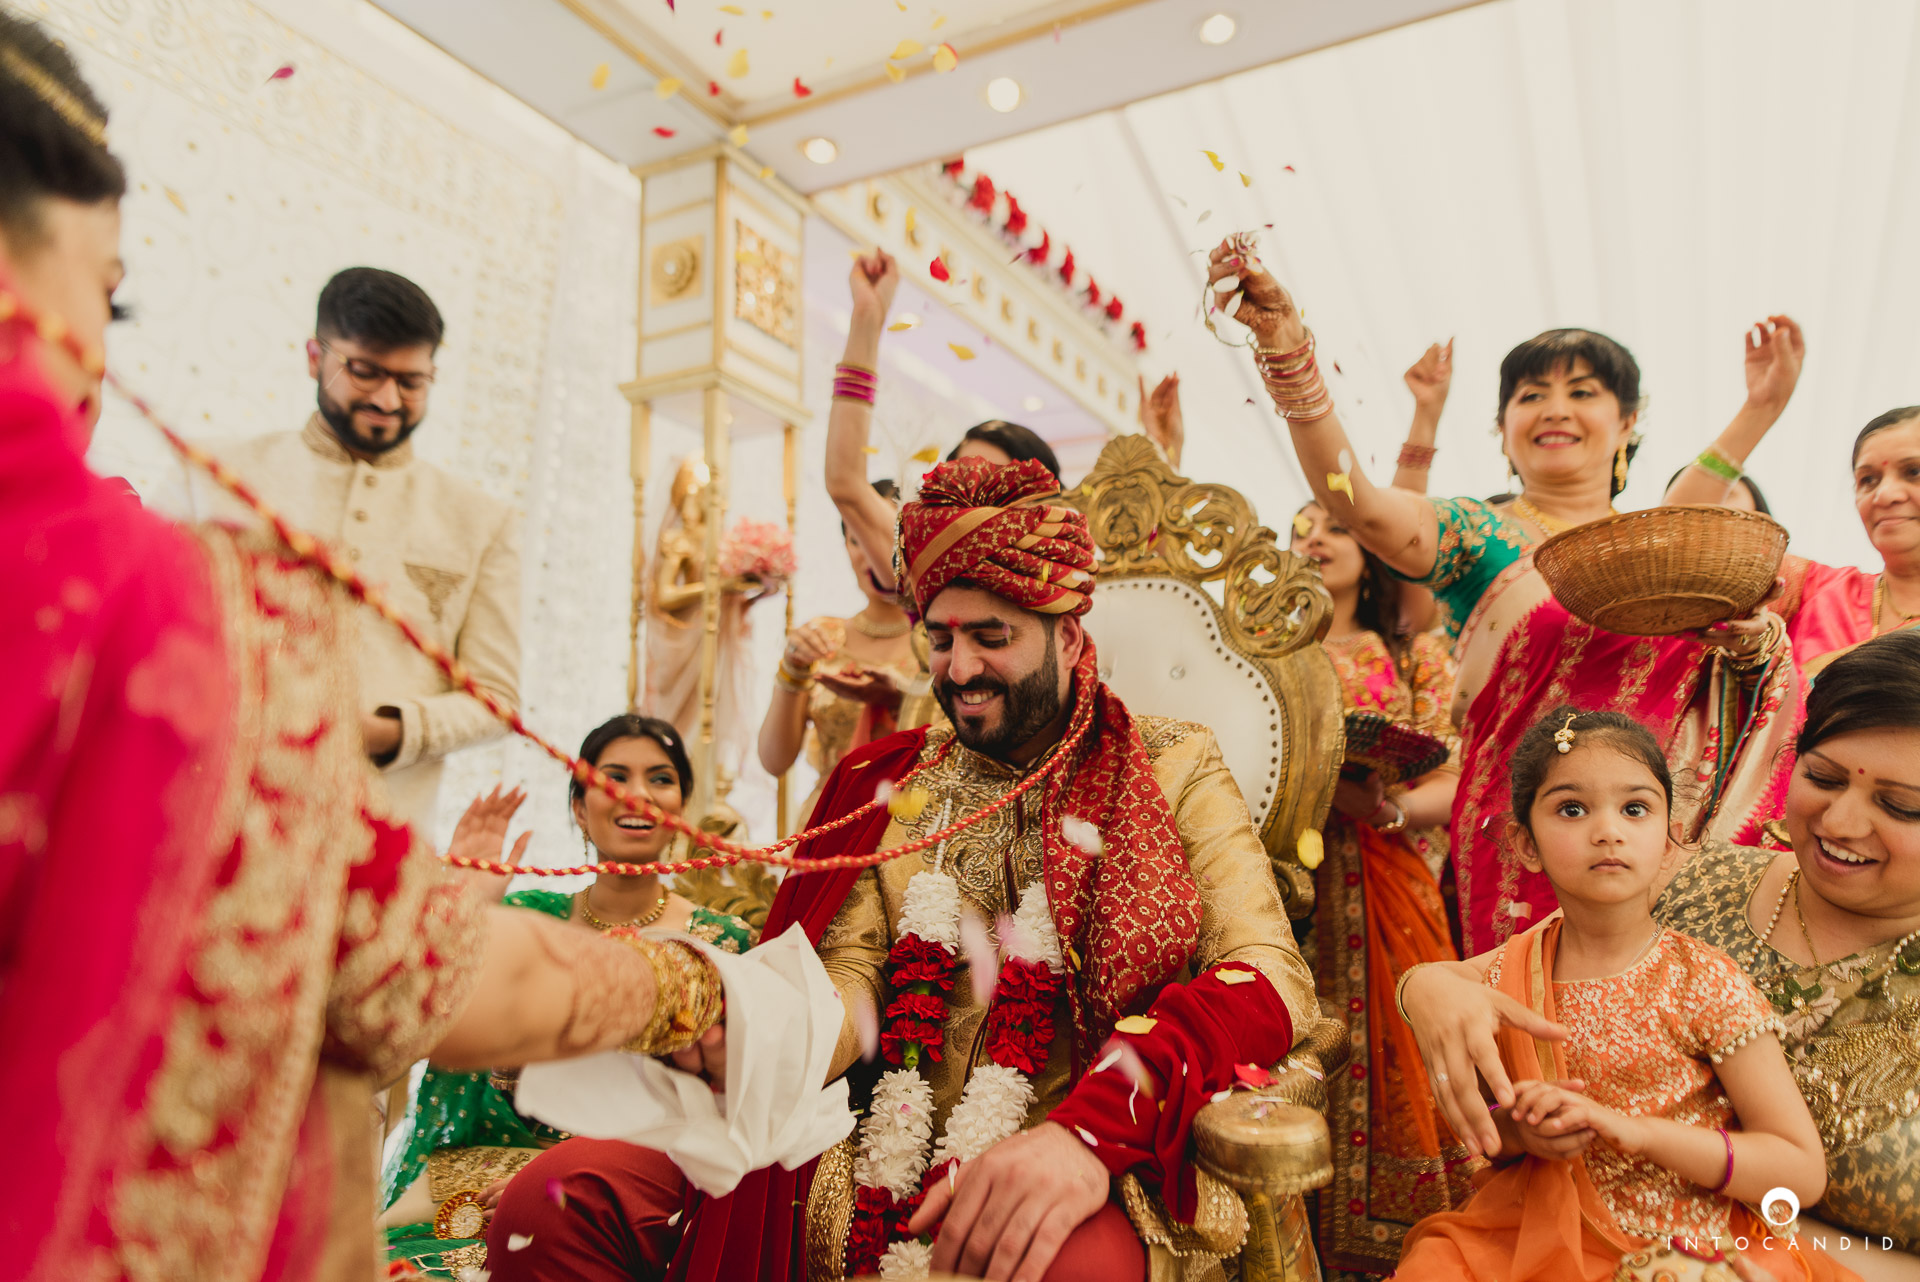 London_Wedding_Photographer_Intocandid_Photography_Ketan & Manasvi_44.JPG